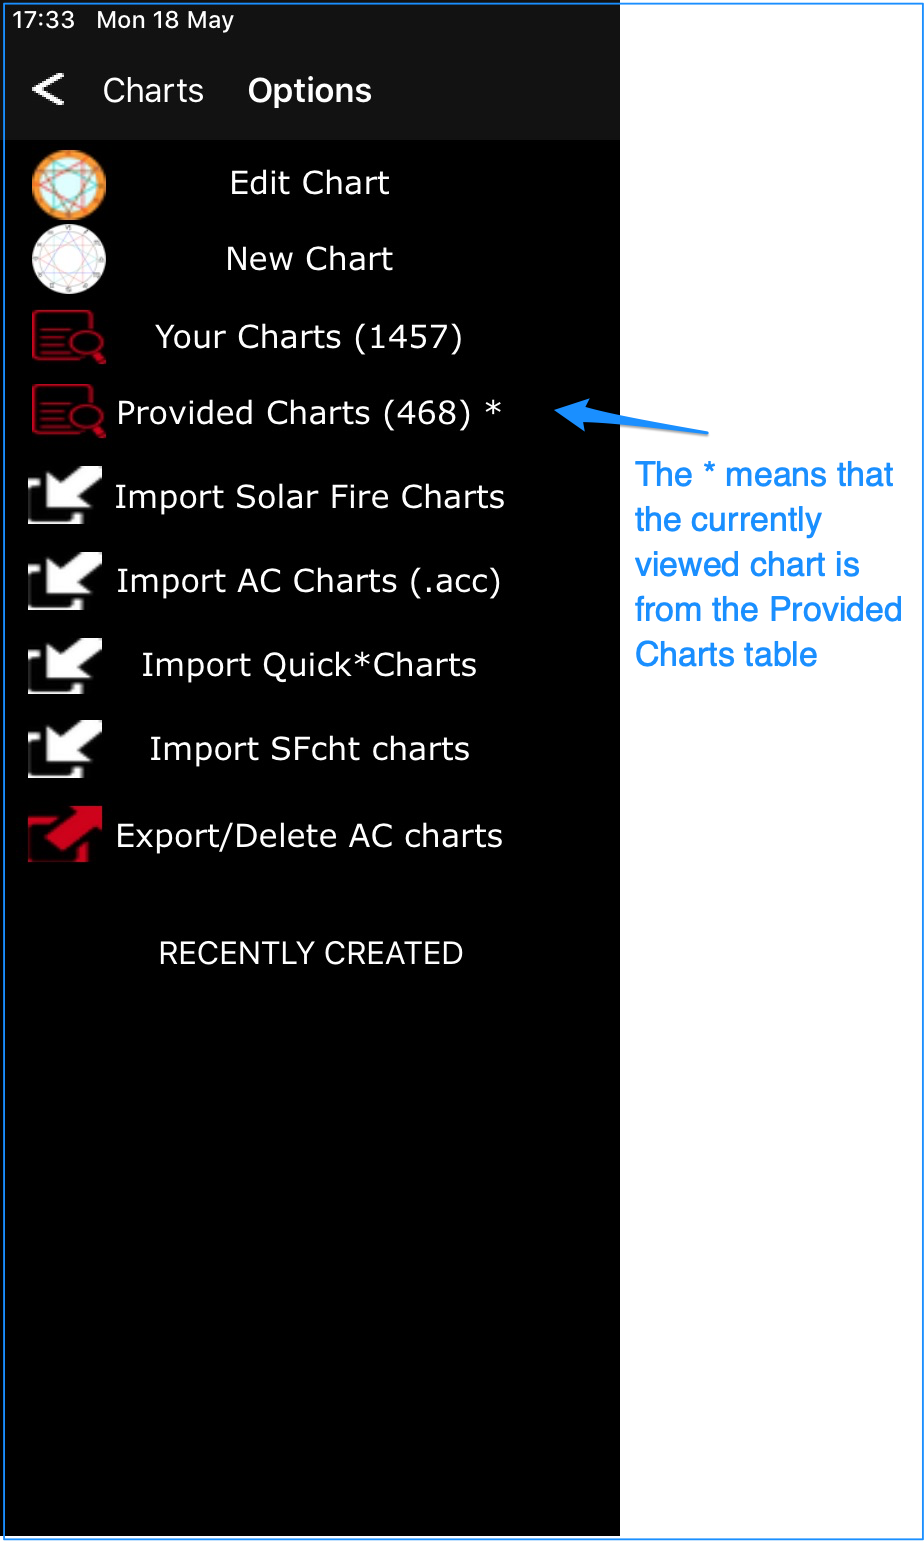 Your Charts and Provided Charts